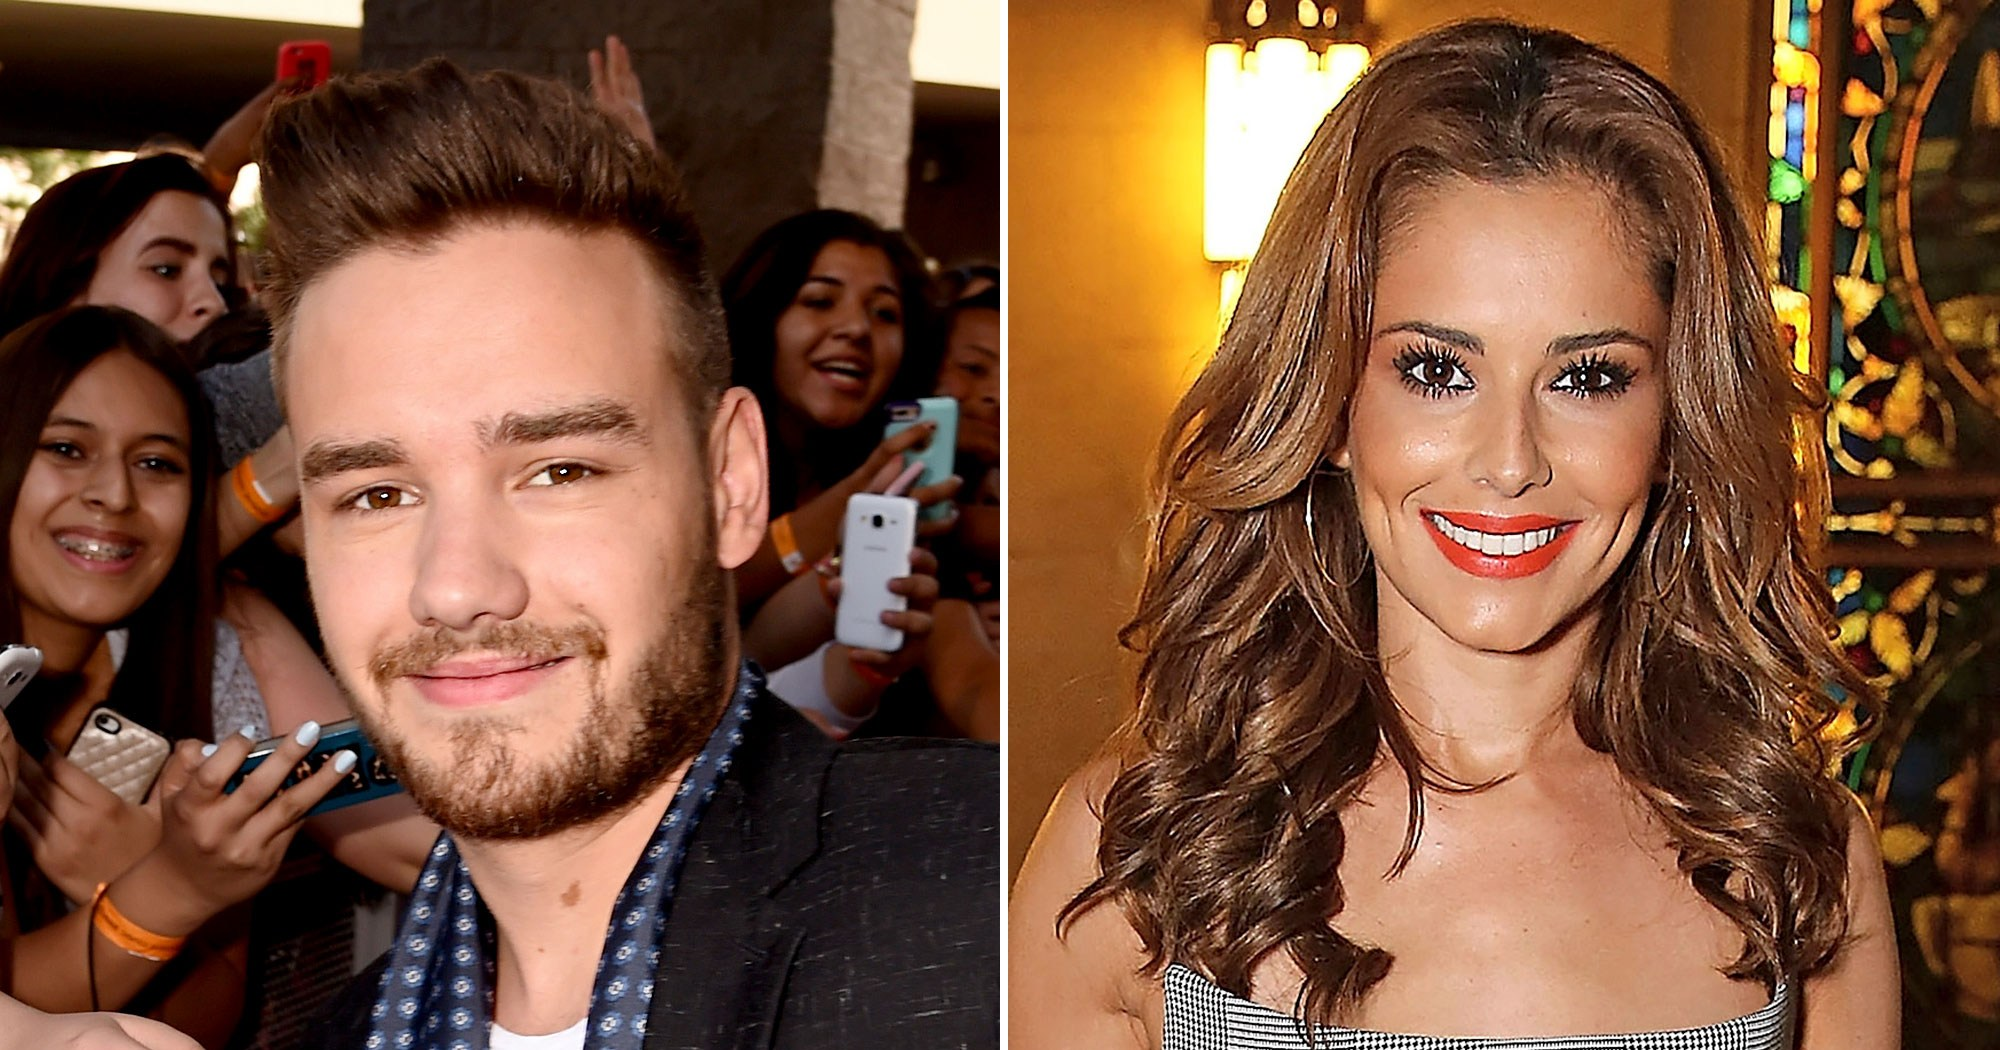 one direction member dating judge Liam payne's love life has taken a new direction the one direction singer is dating x factor judge cheryl fernandez-versini, people confirms.